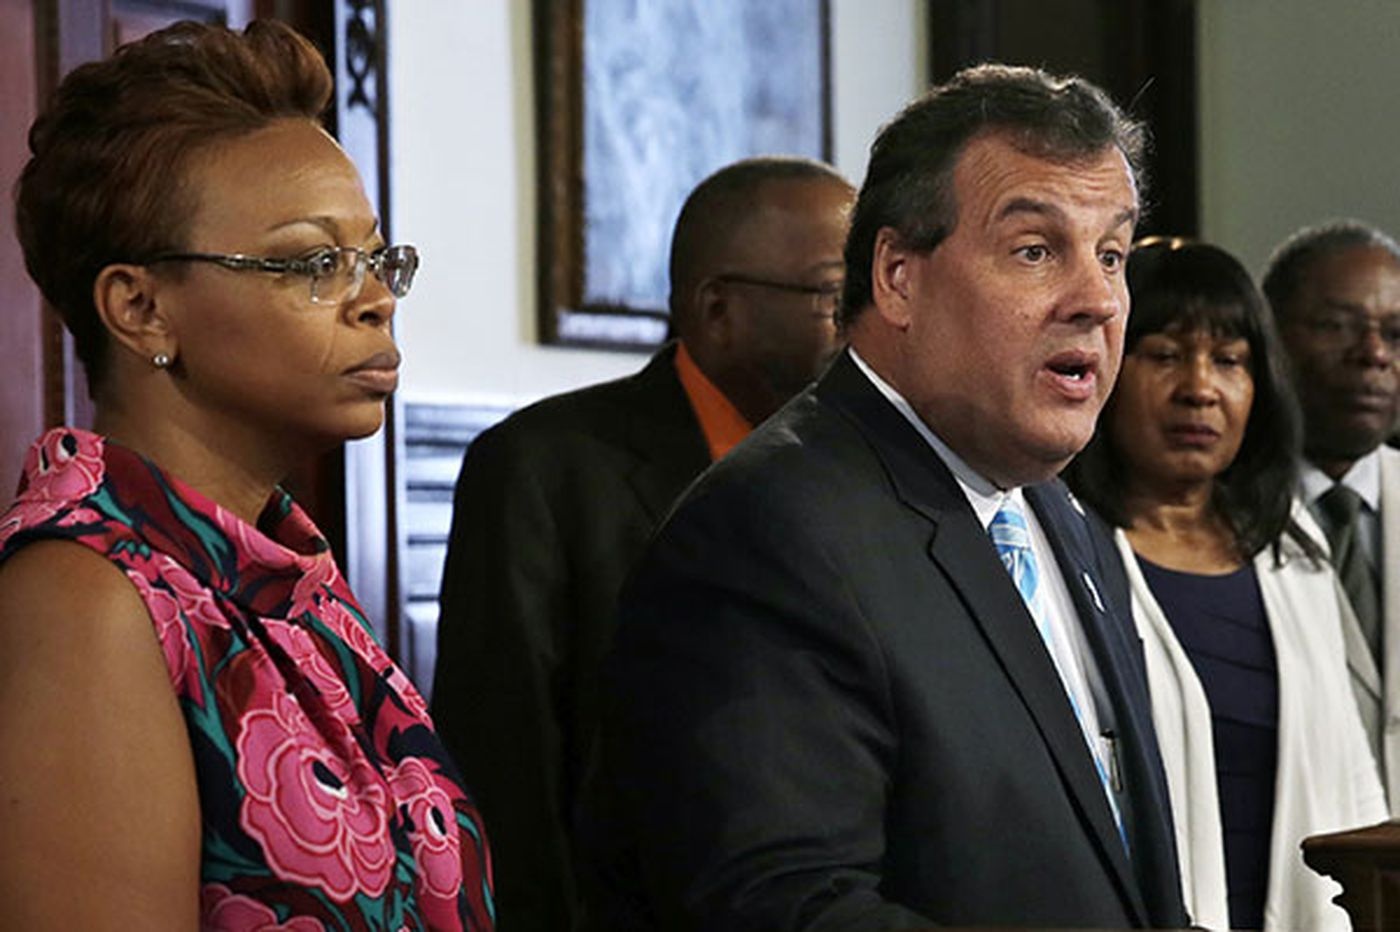 Christie urges lawmakers to change bail system